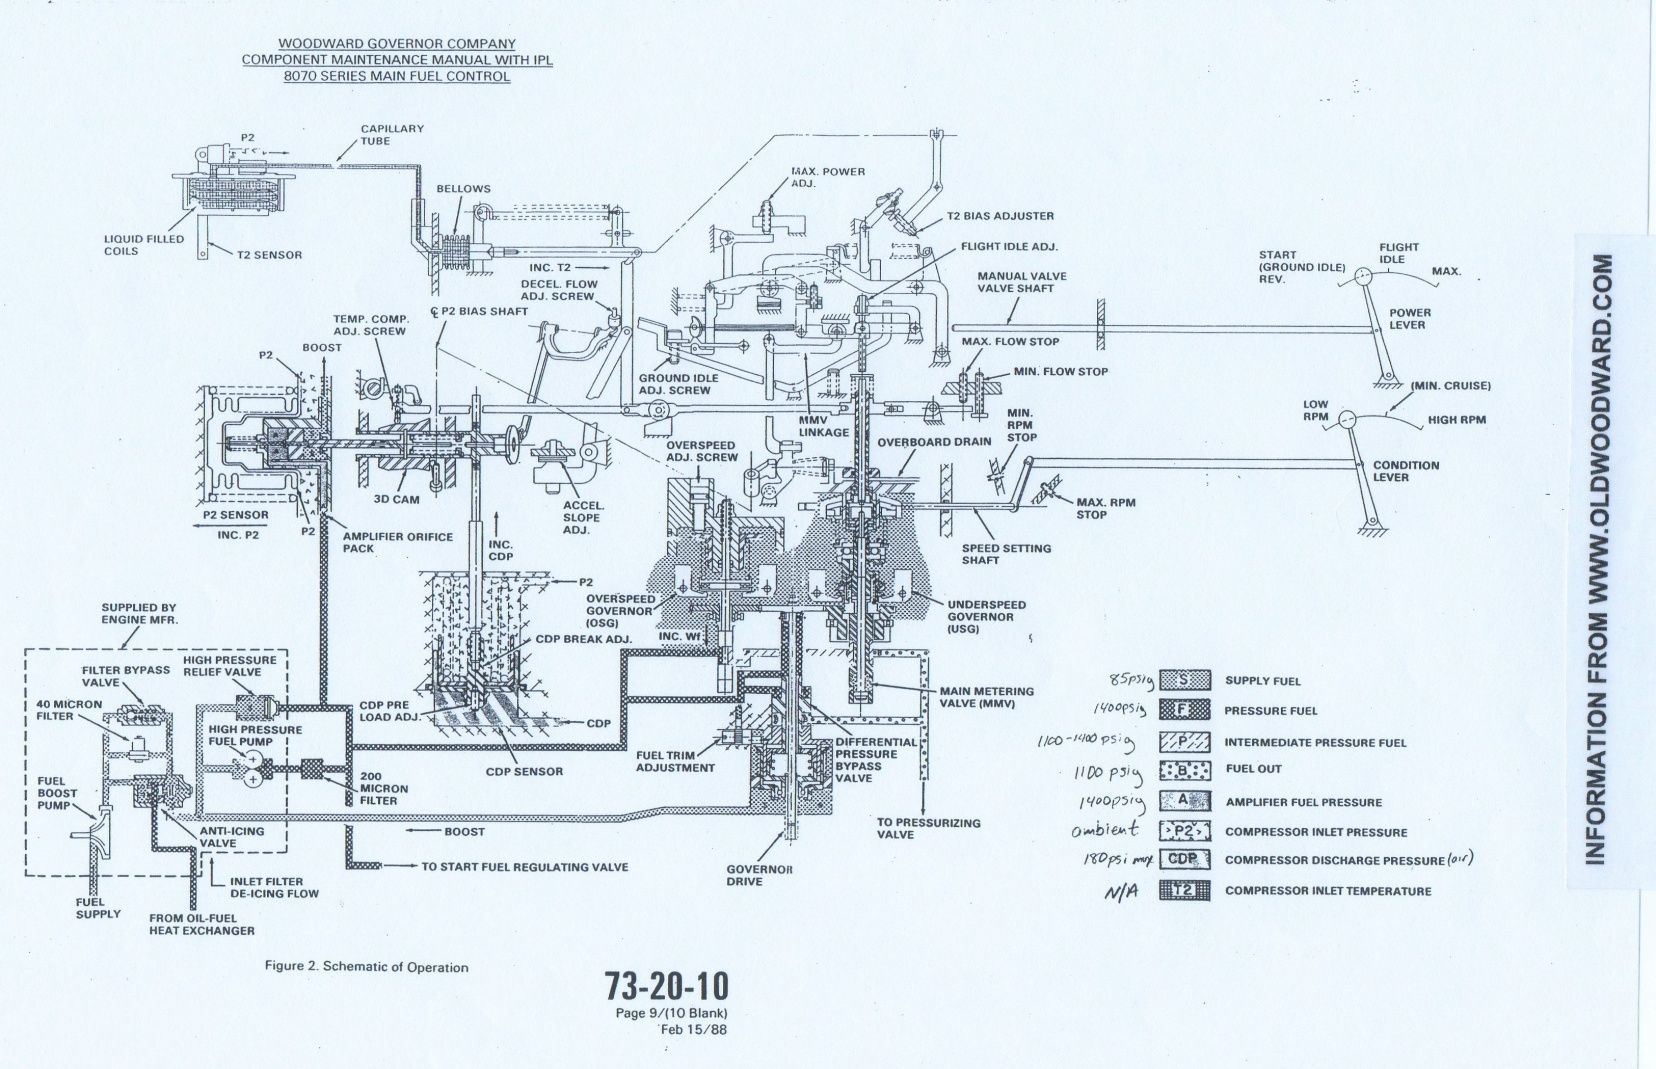 A Woodward Governor Company schematic drawing of a jet